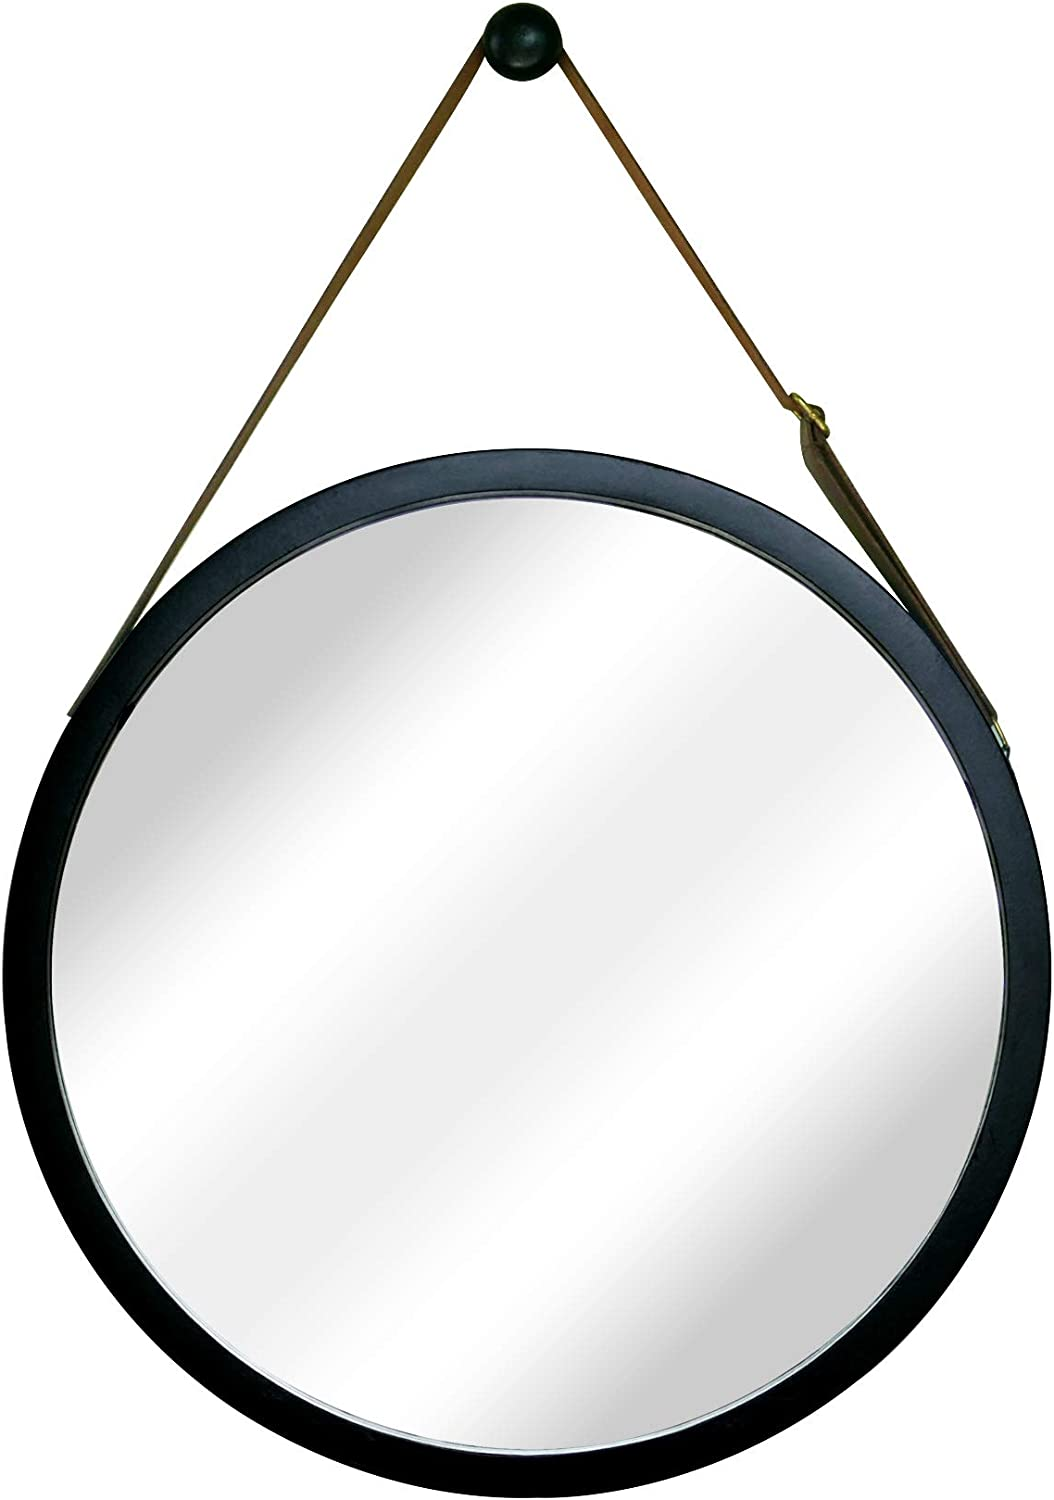 NIKKY HOME Small Round Hanging Wall Mirror with Solid Bamboo Frame Lightweight with Faux Adjustable Leather Strap, Black 15""